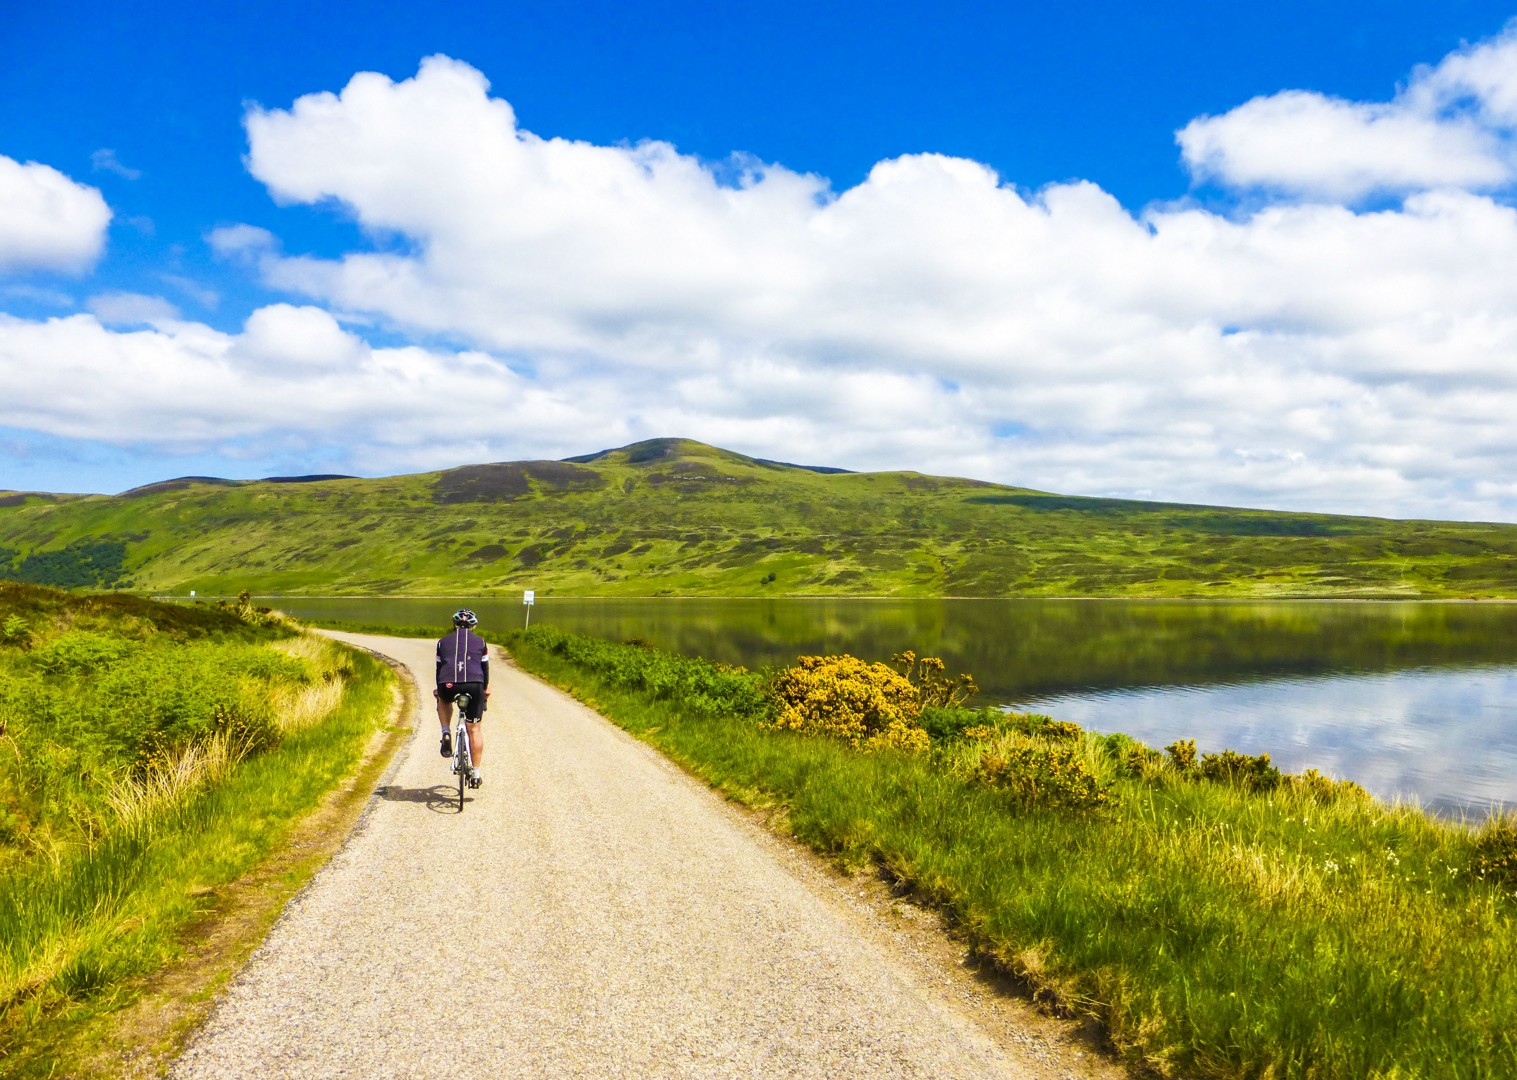 lochs-and-glens-of-scotland-uk-by-bike-cycling-self-guided-tour.jpg - UK - Scotland - Lochs and Glens - Leisure Cycling